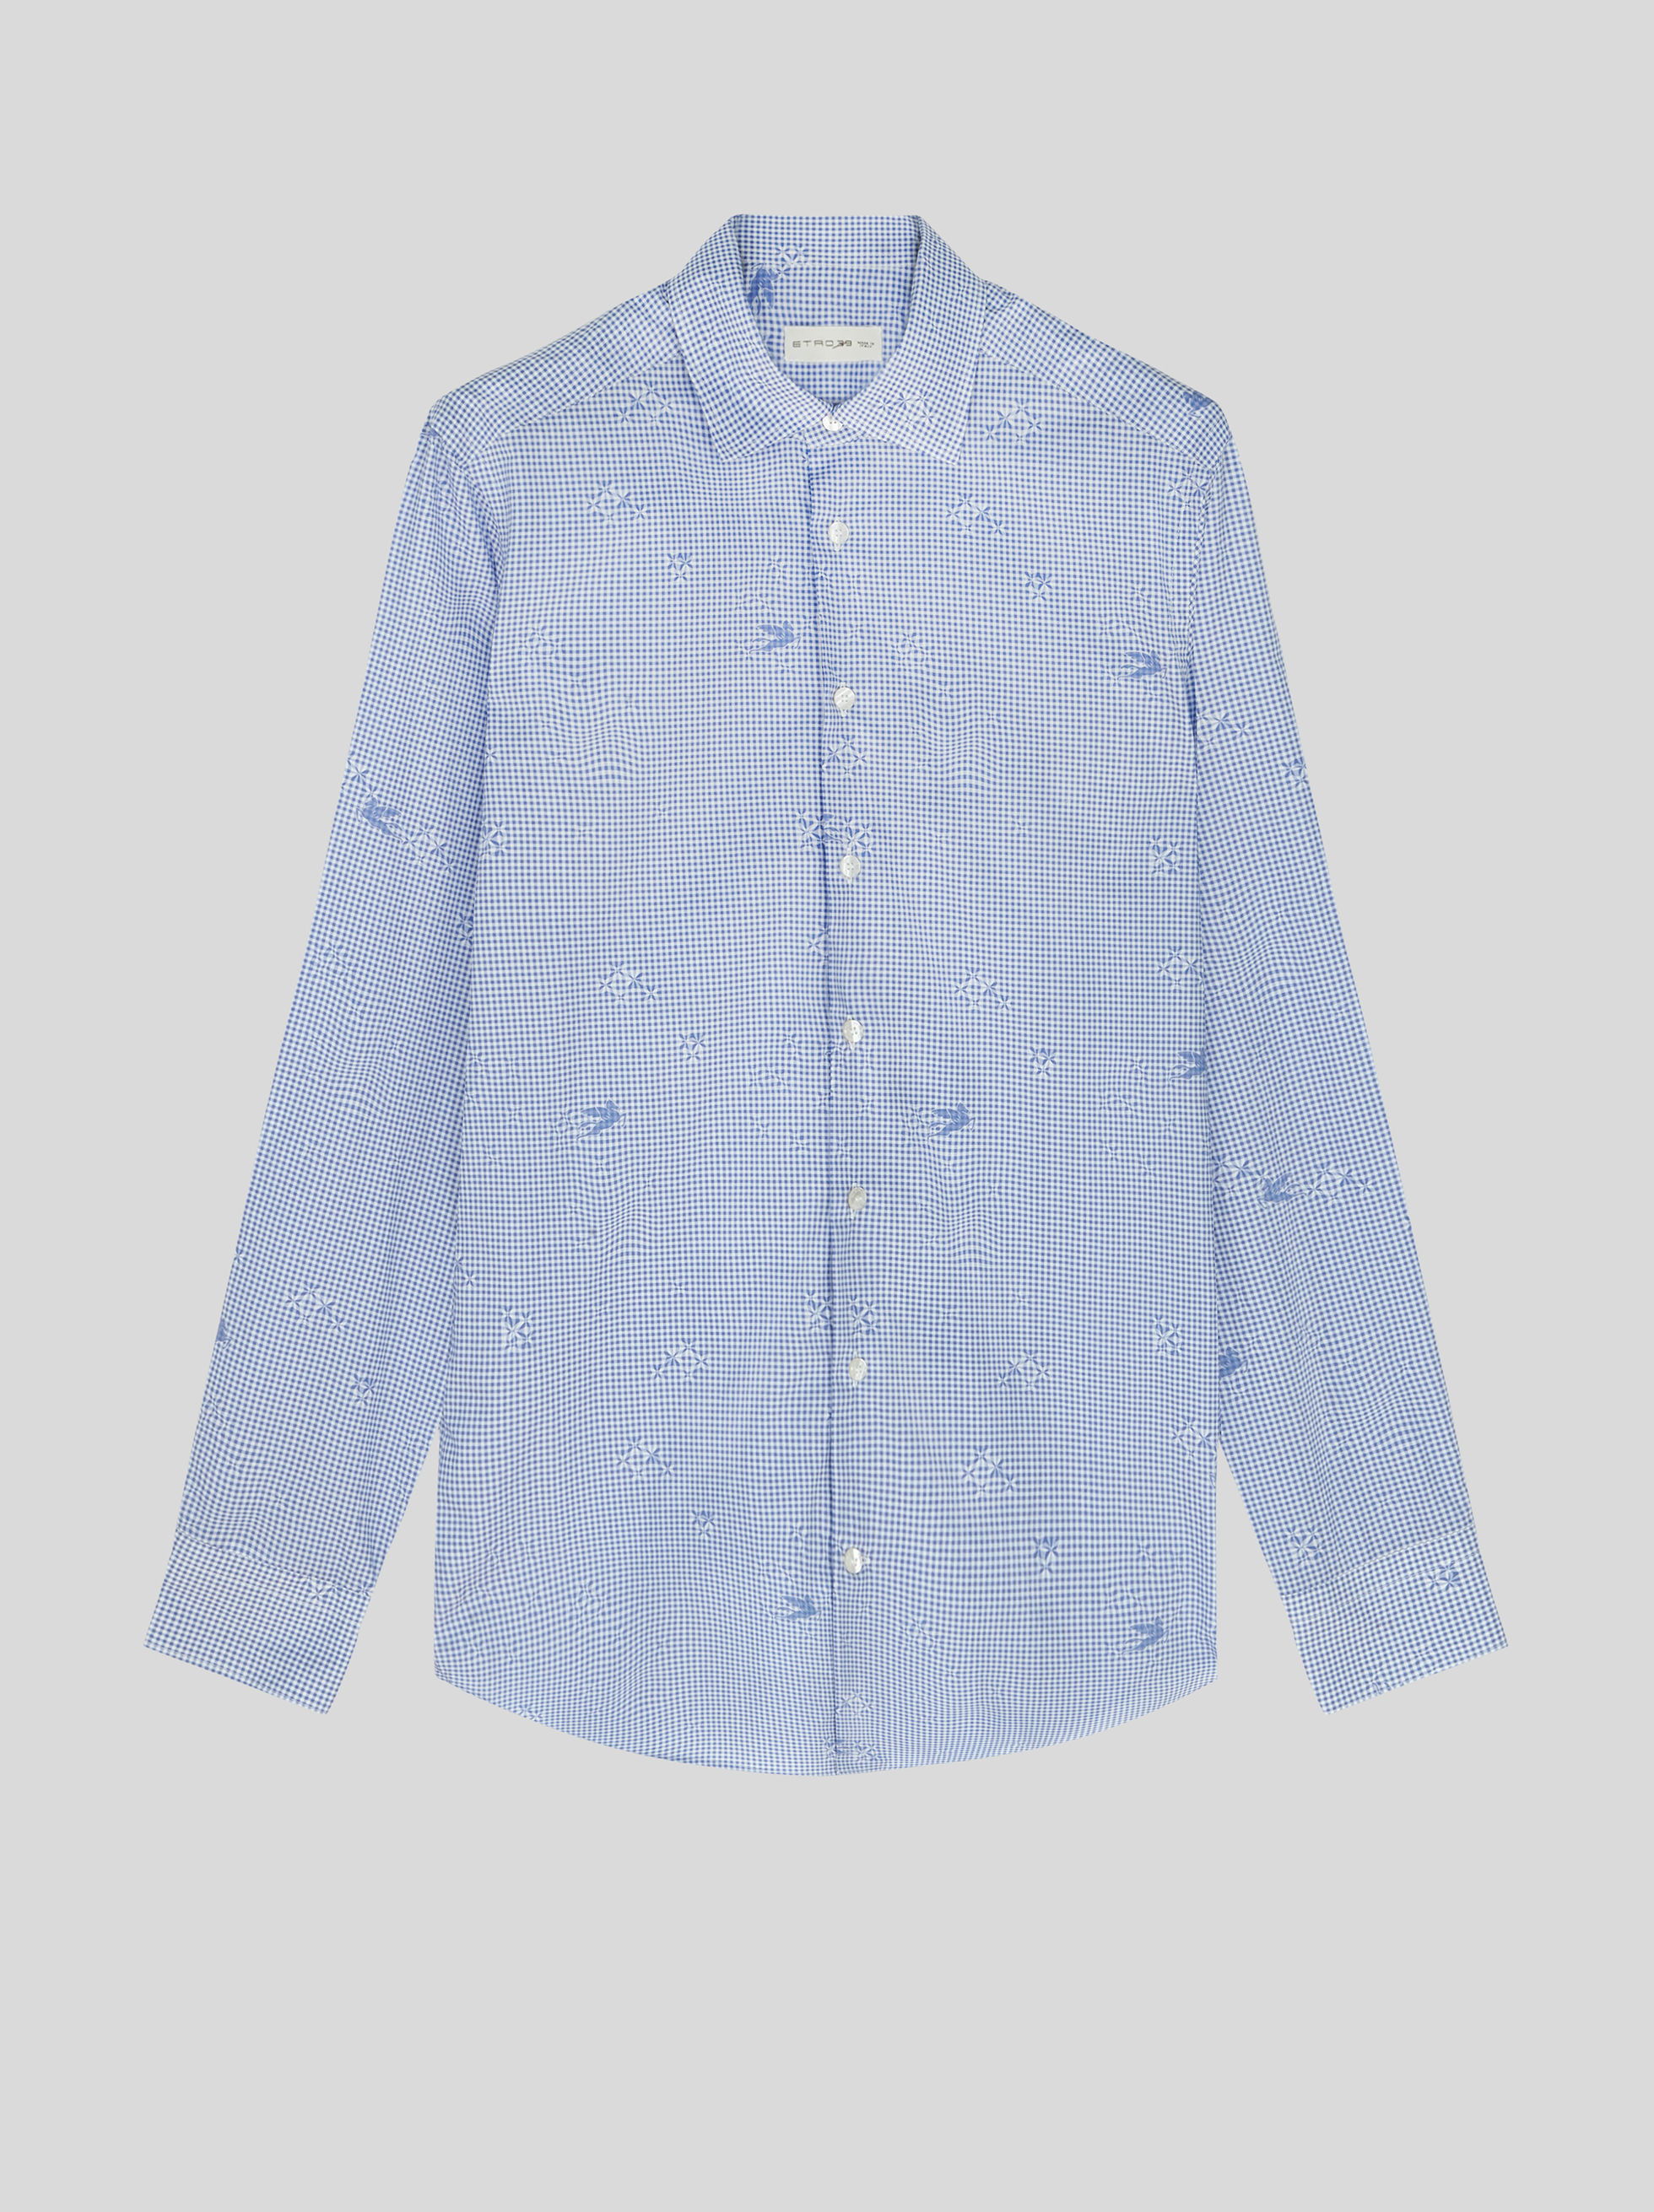 CHECK COTTON SHIRT WITH PEGASO